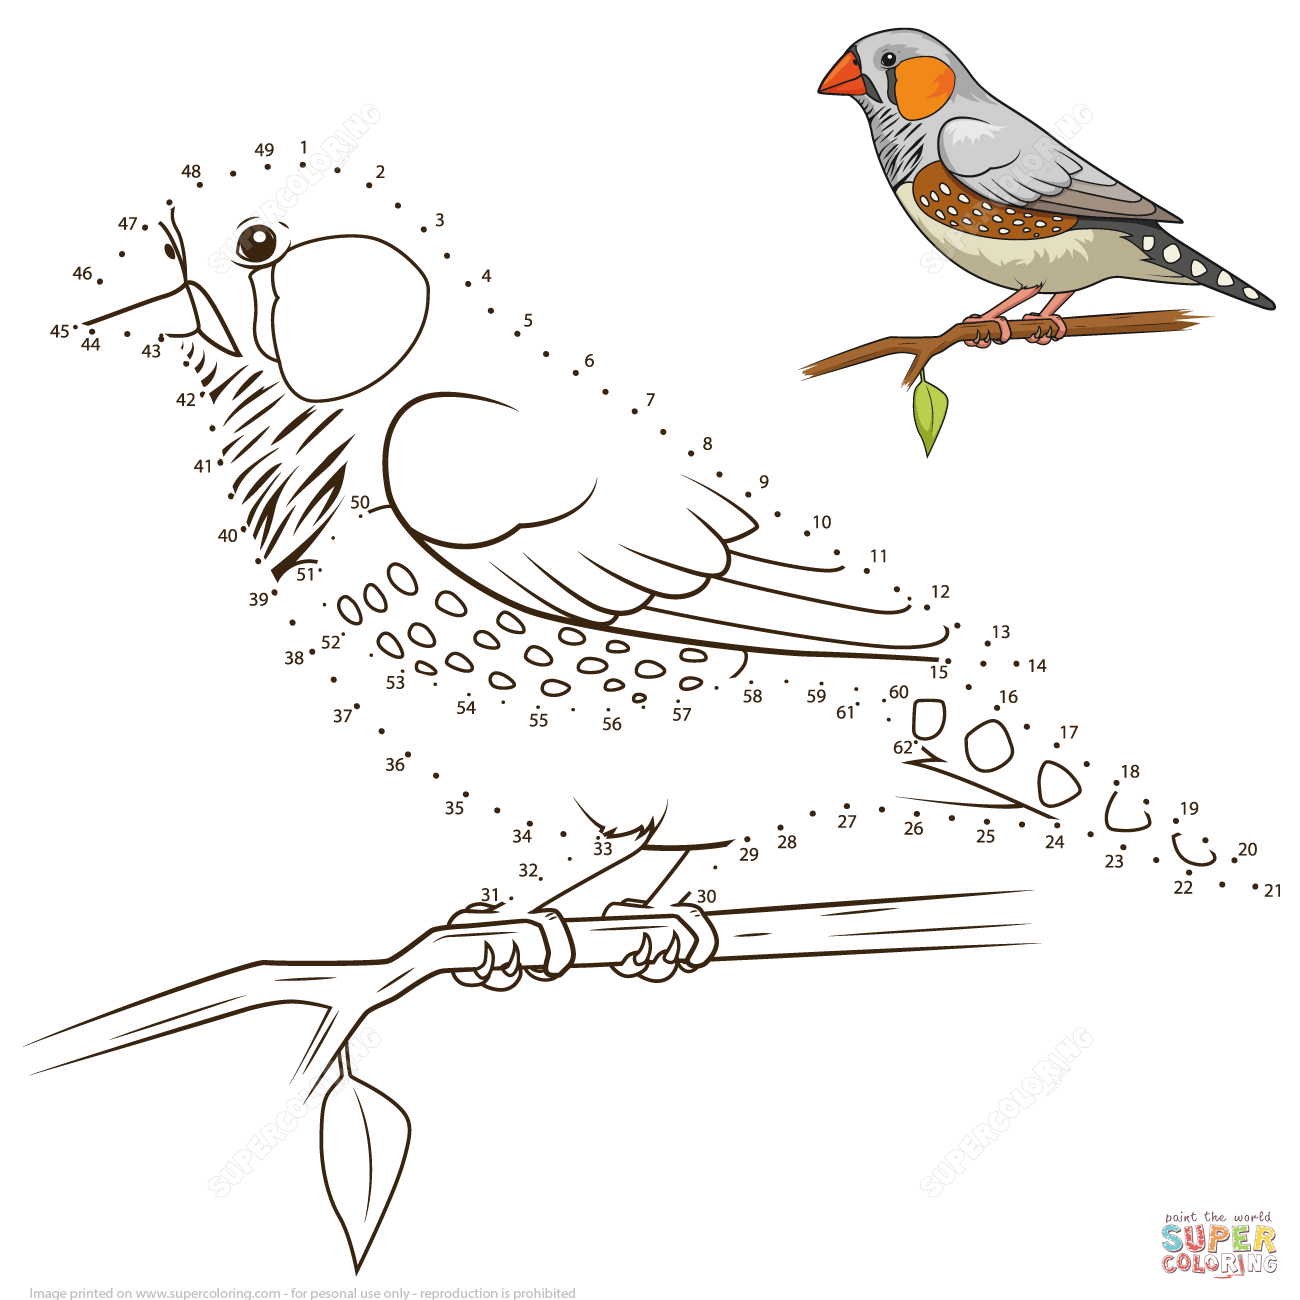 Zebra Finch Bird Dot To Dot